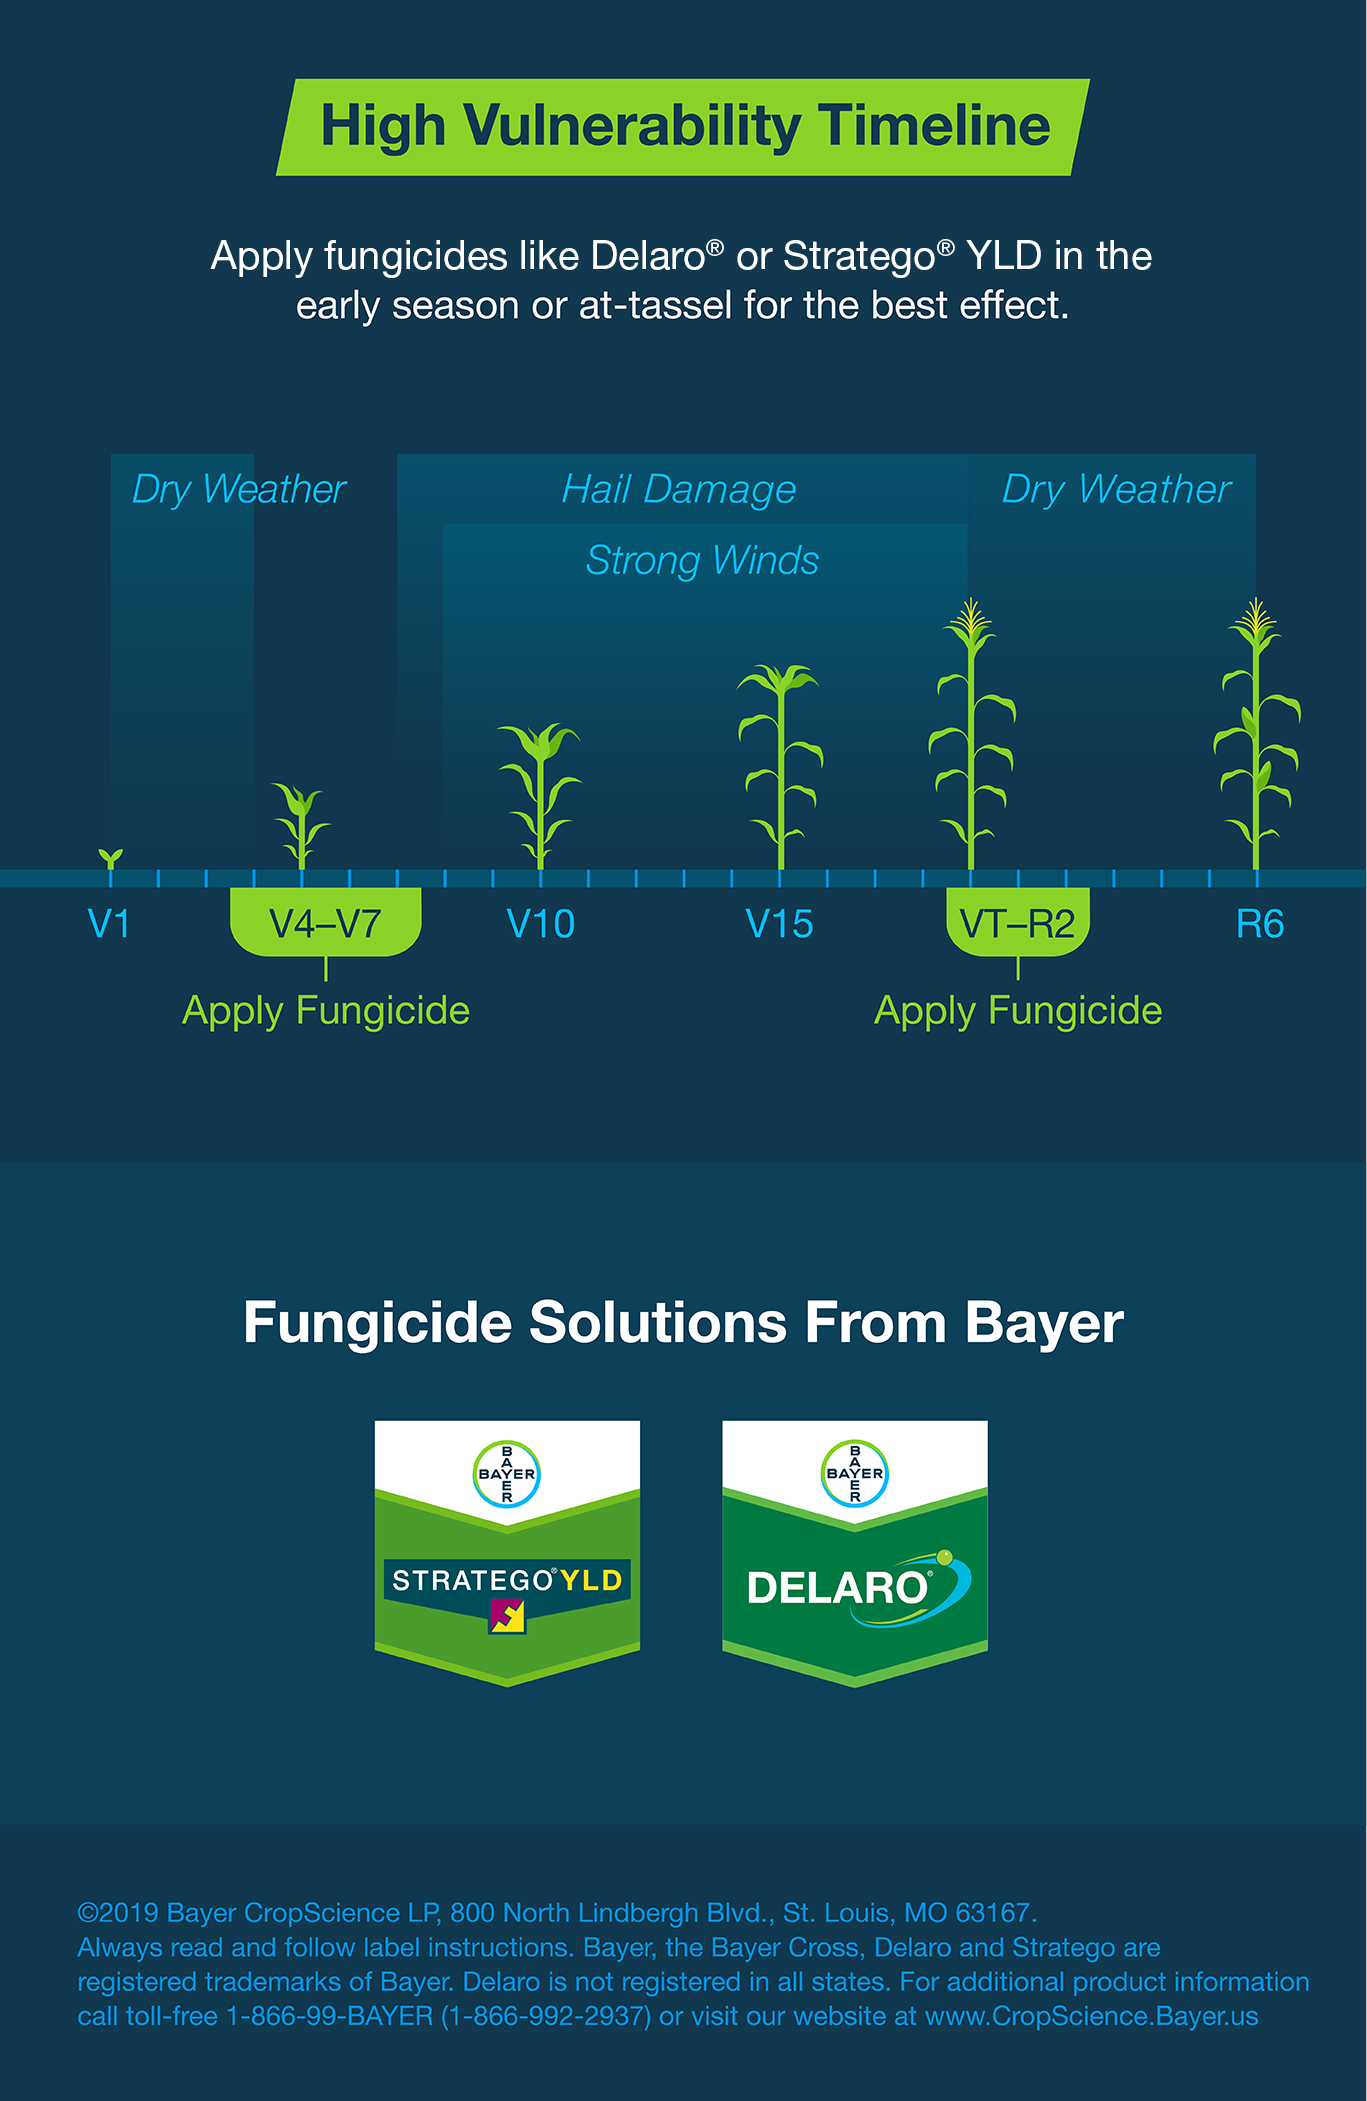 apply-fungicides-like-delaro-or-strategoyld-in-the-early-season-or-at-tassel